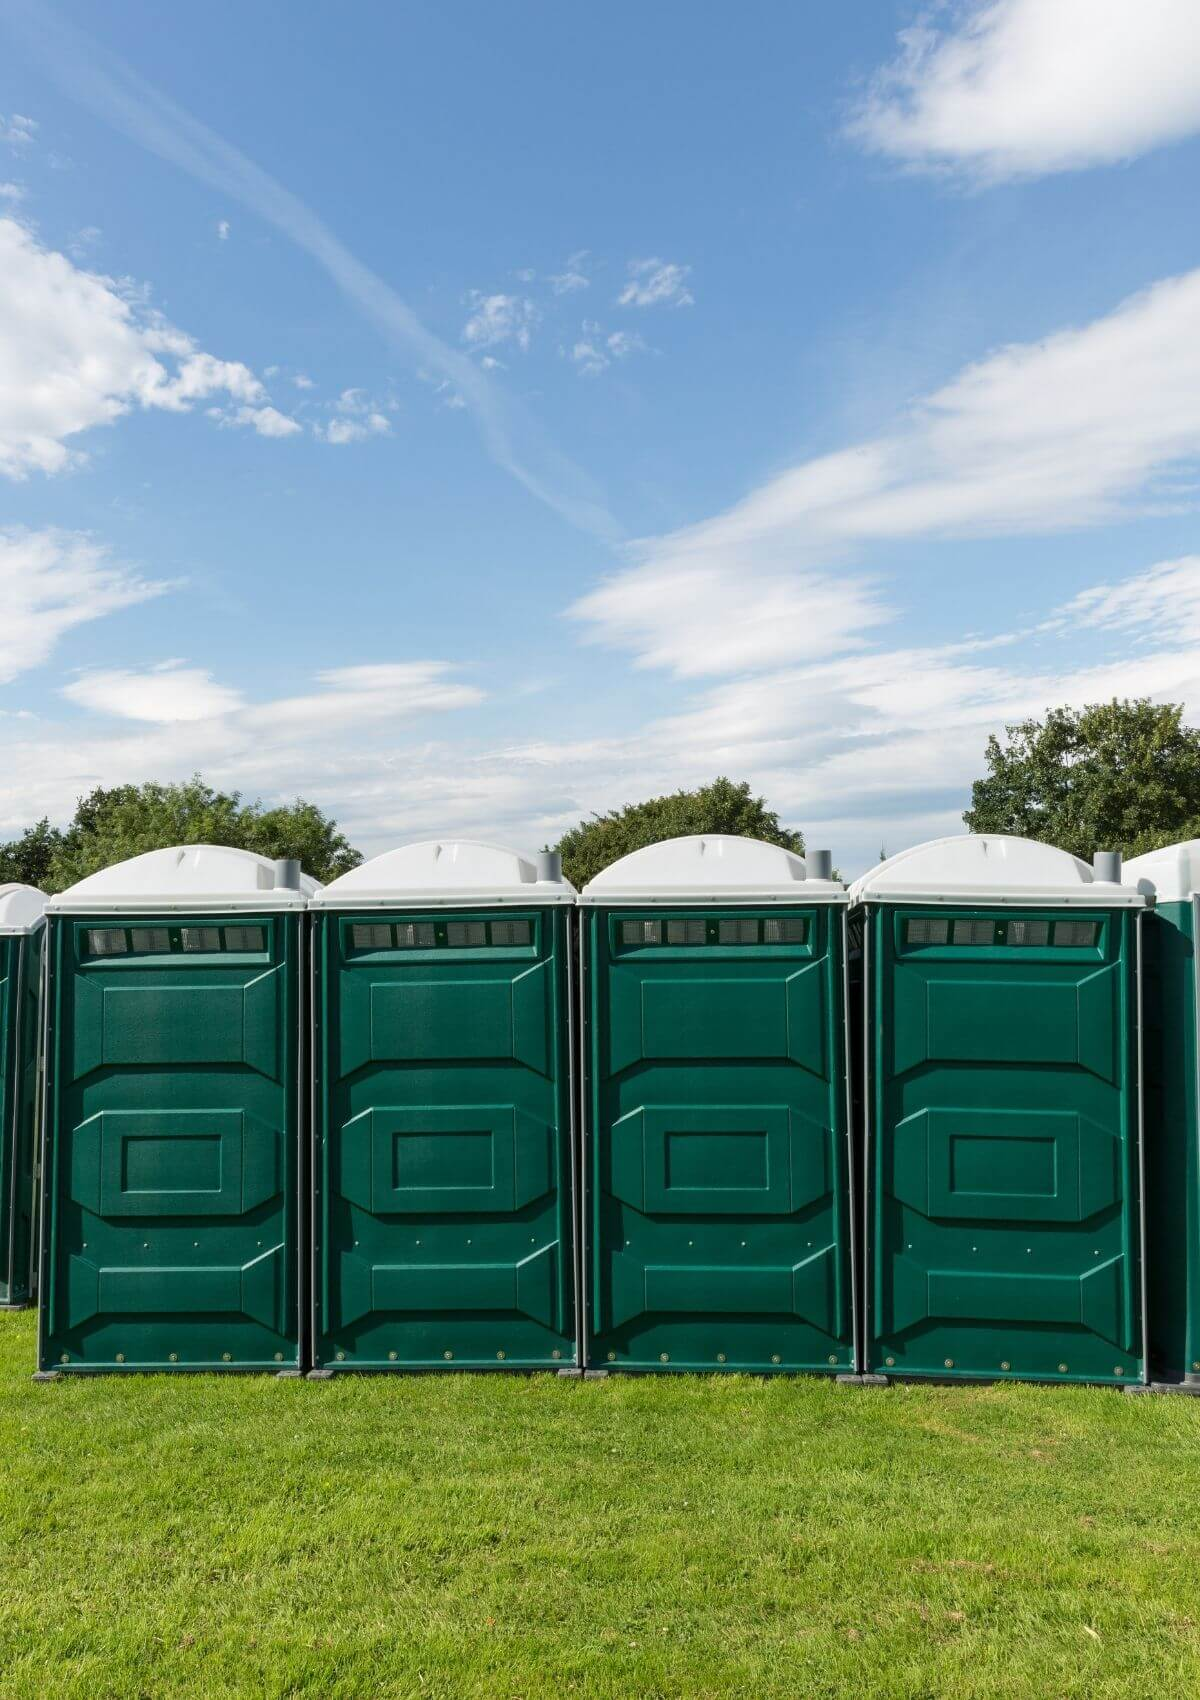 How to avoid festival toilets